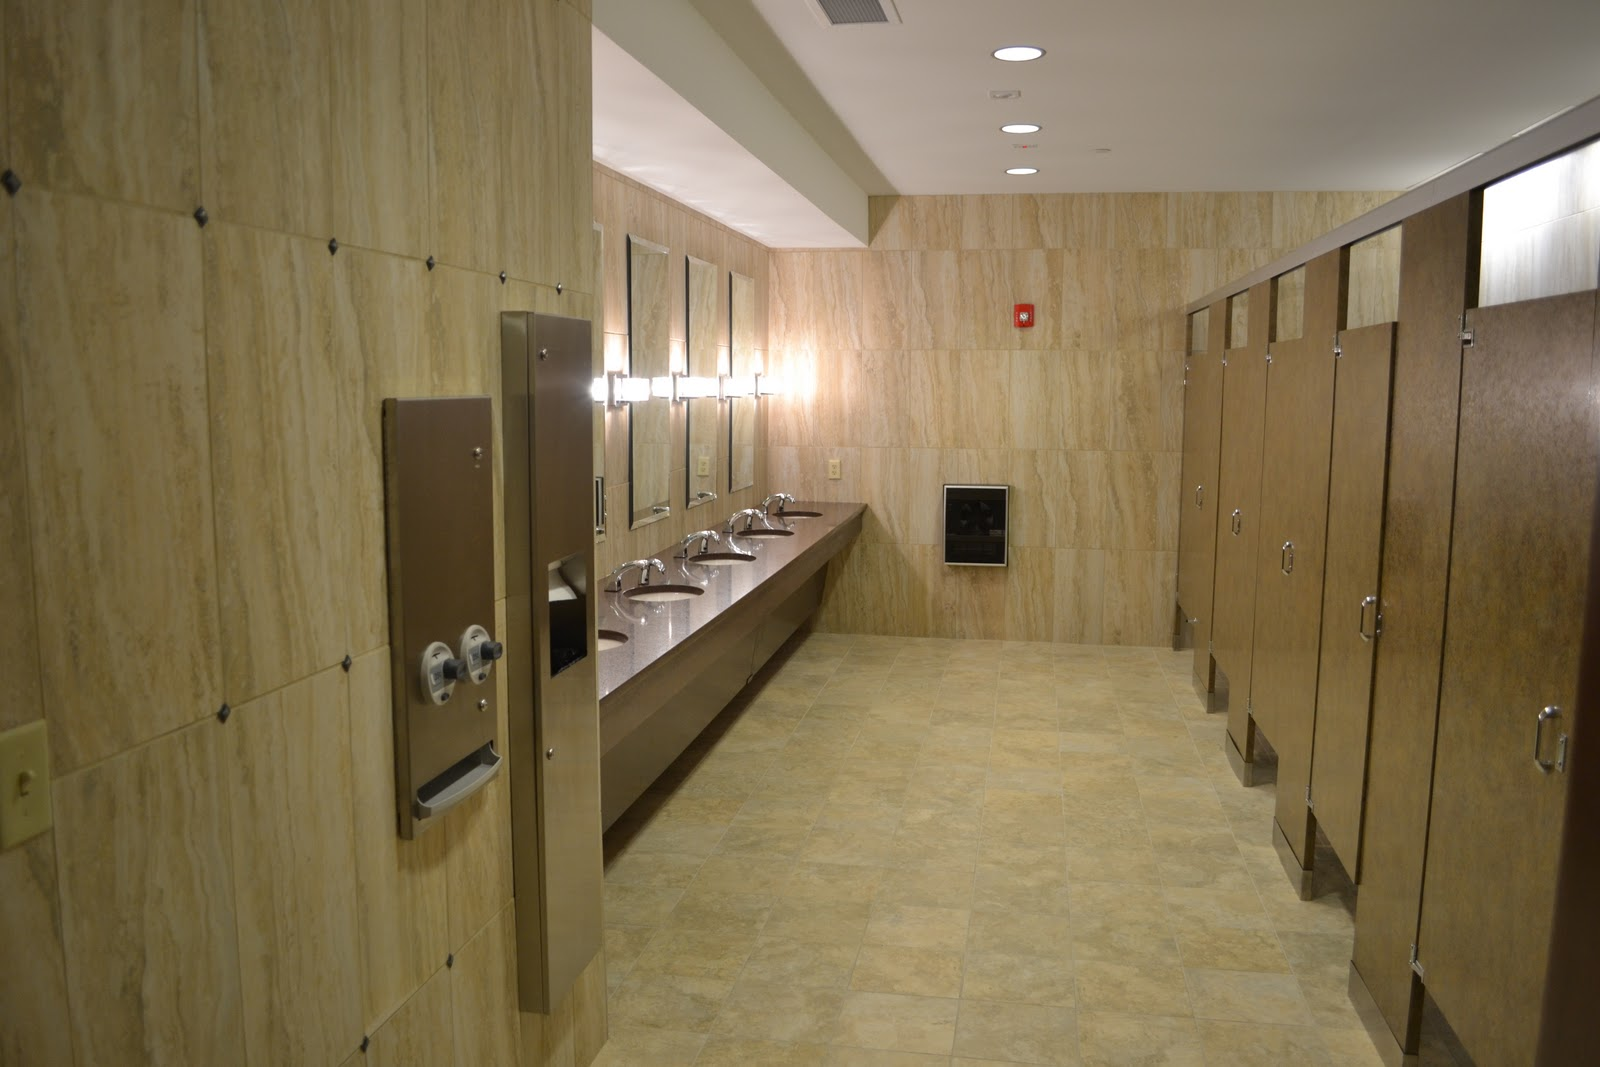 The Center Renovated Bathrooms